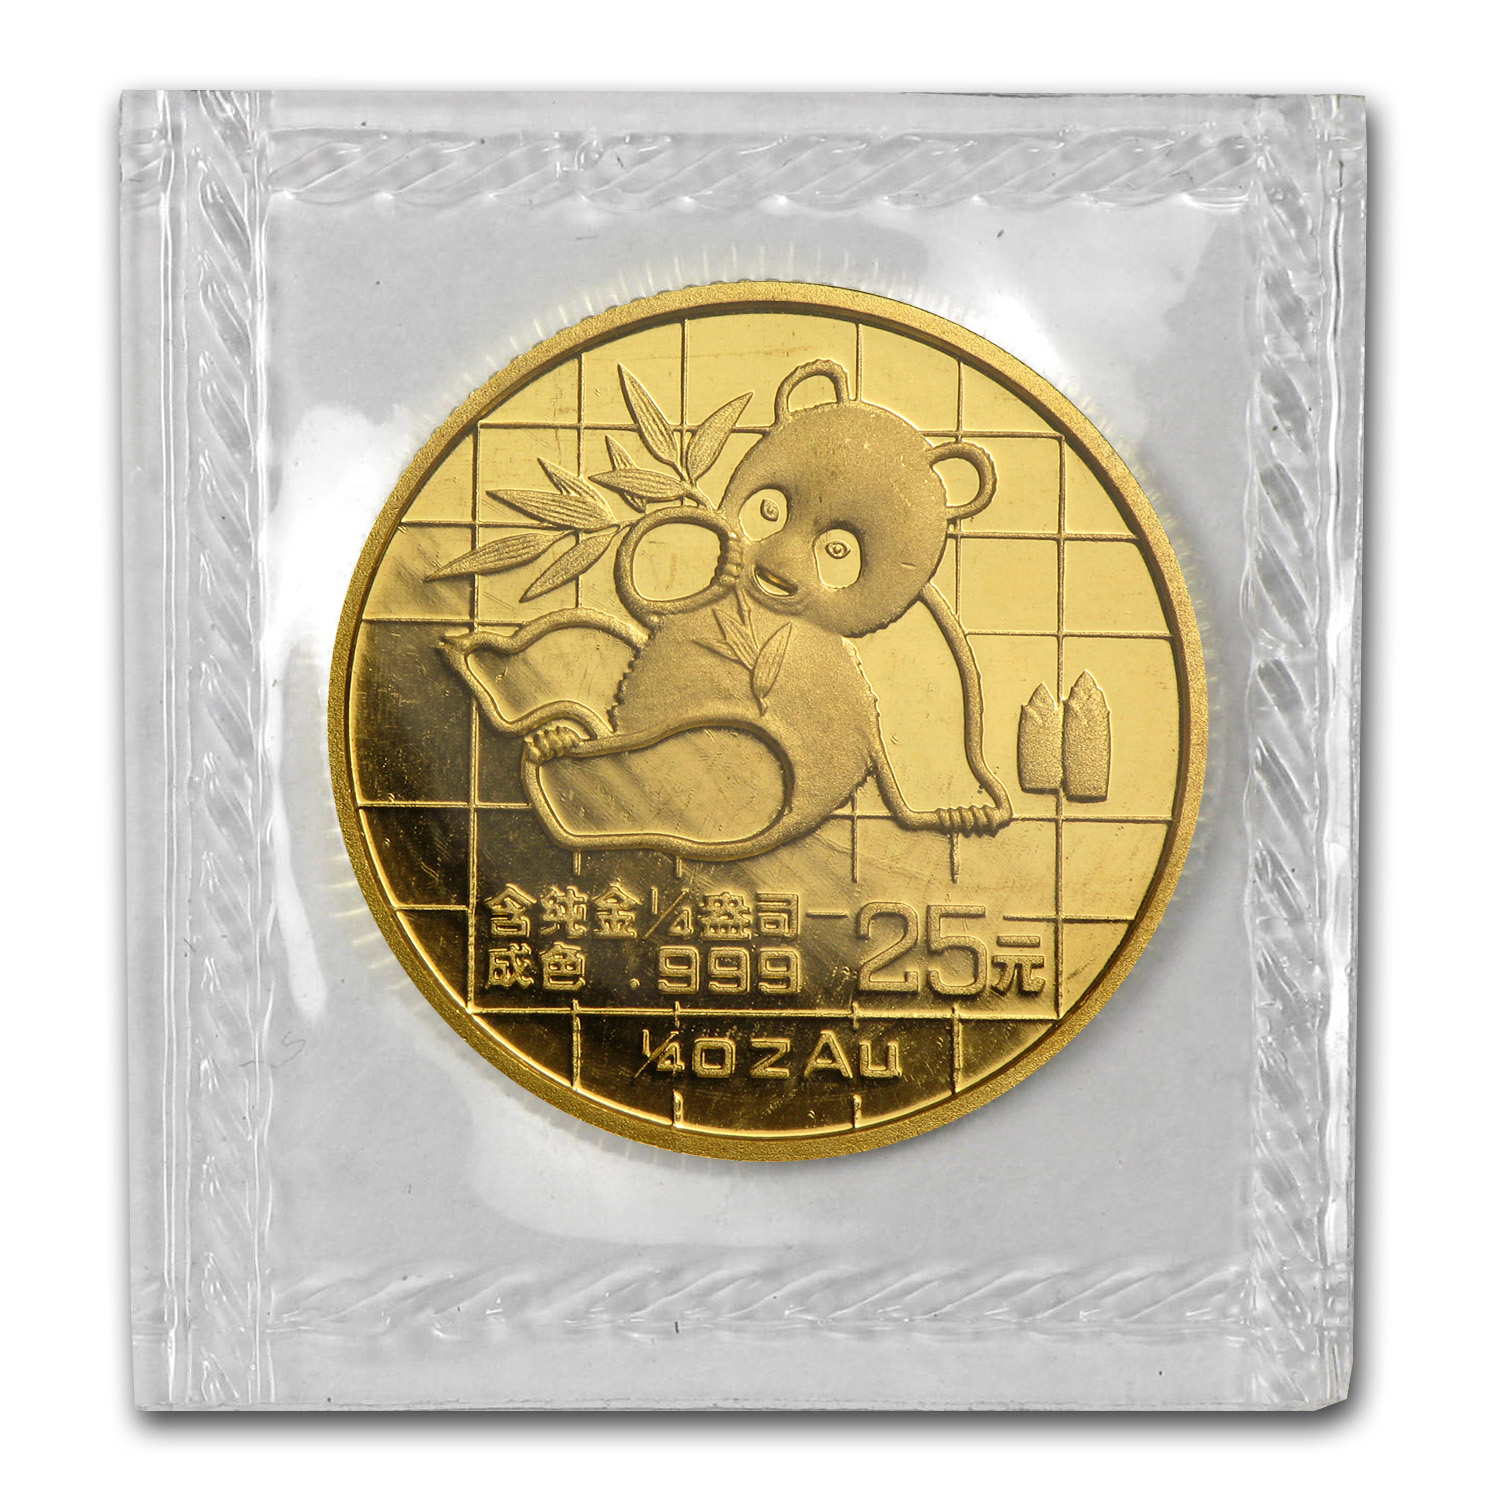 1989 China 1/4 oz Gold Panda Large Date BU (Sealed)